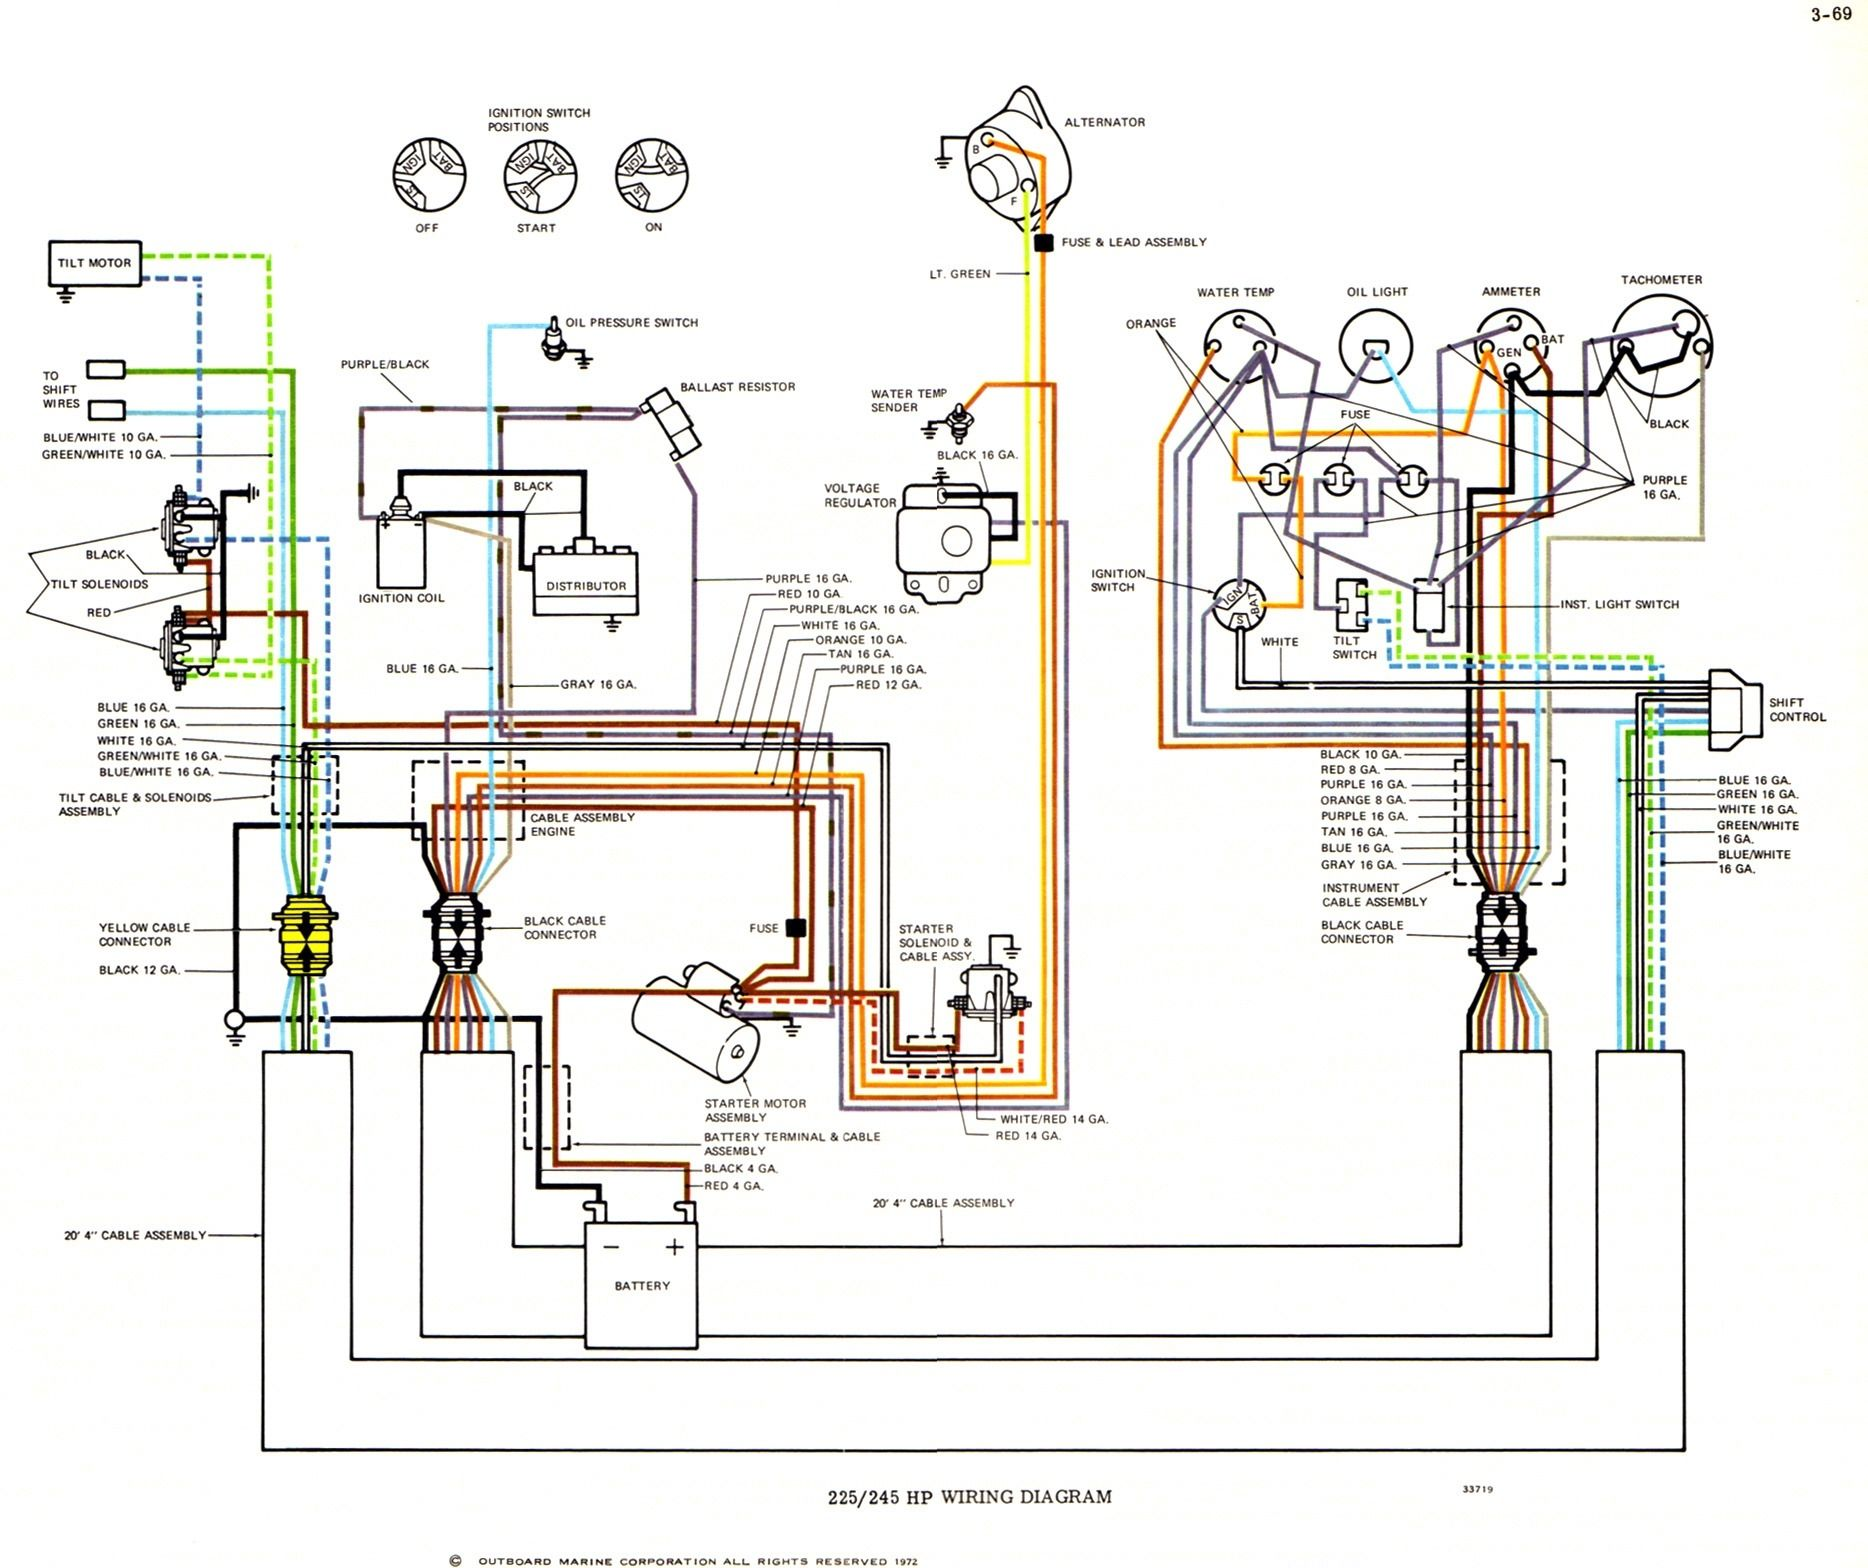 yamaha 4 stroke outboard wiring diagram - database wiring diagram  cervicalefano.it